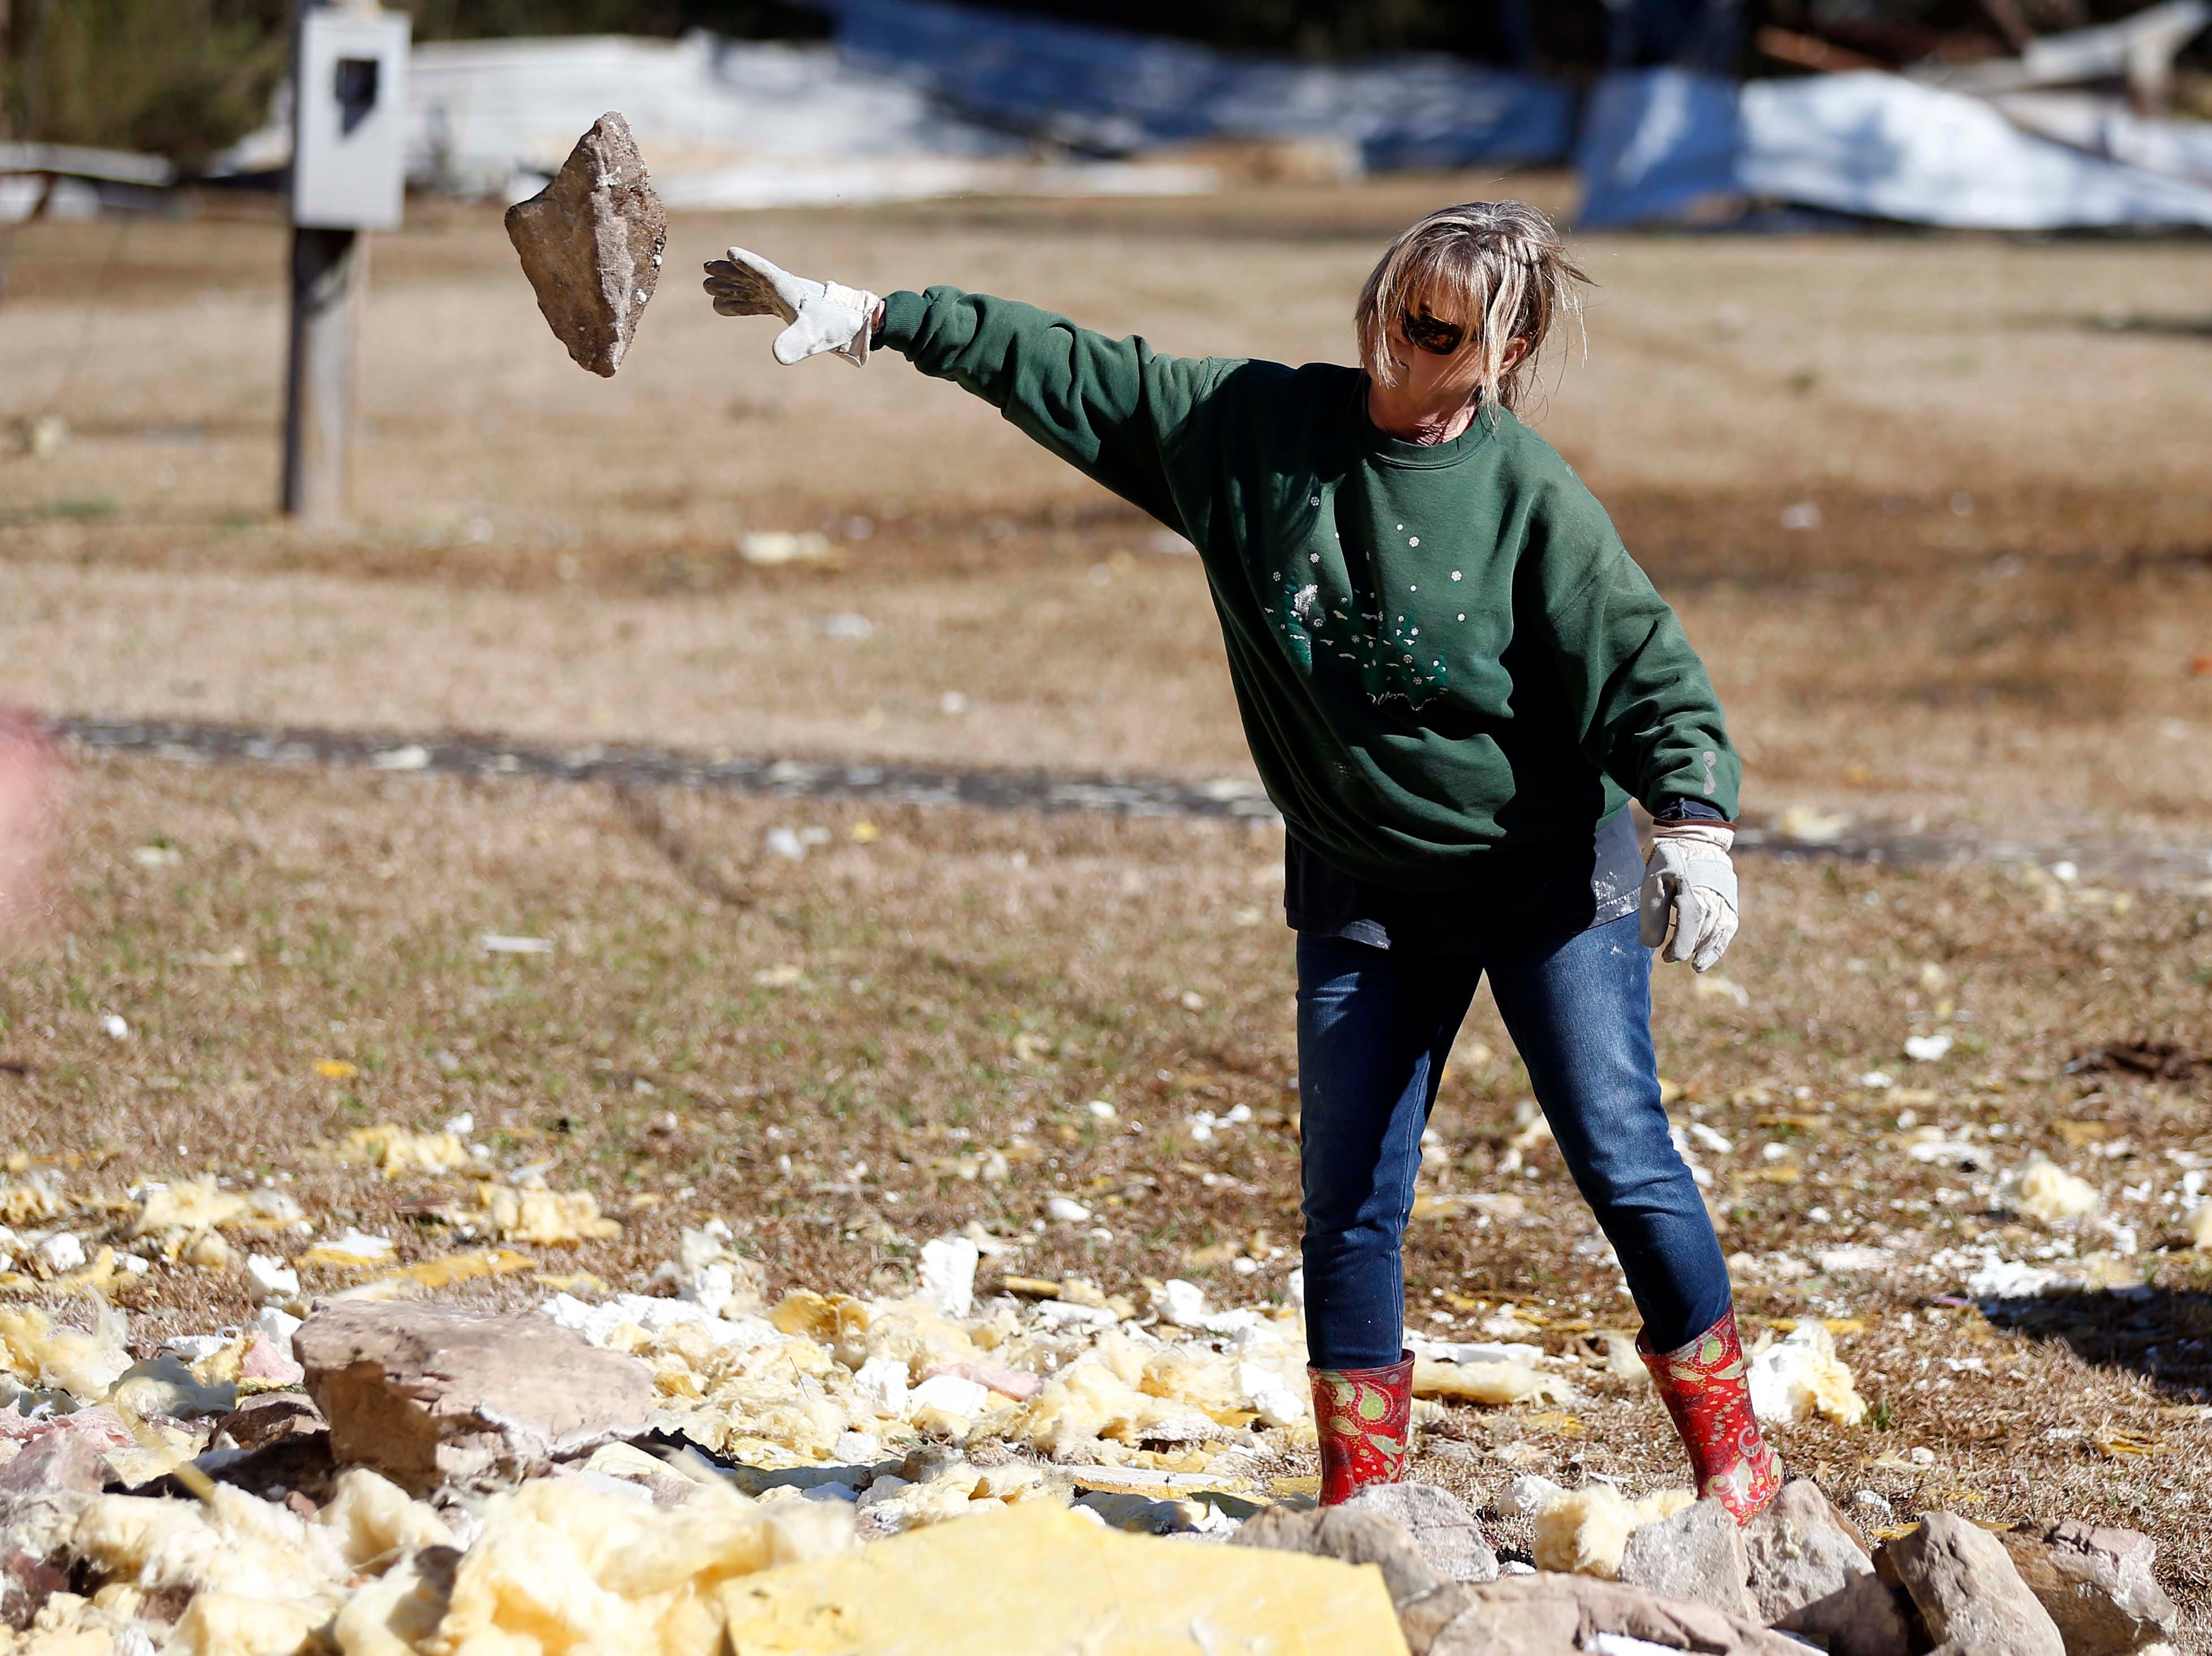 A church member tosses to the side a large stone that was part of the exterior of the First Pentecostal Church in Columbus, Miss., Sunday morning, Feb. 24, 2019. While no-one was injured during Saturday's storm, where at least one person was killed in town among the shattered businesses and wrecked homes. (AP Photo/Rogelio V. Solis)